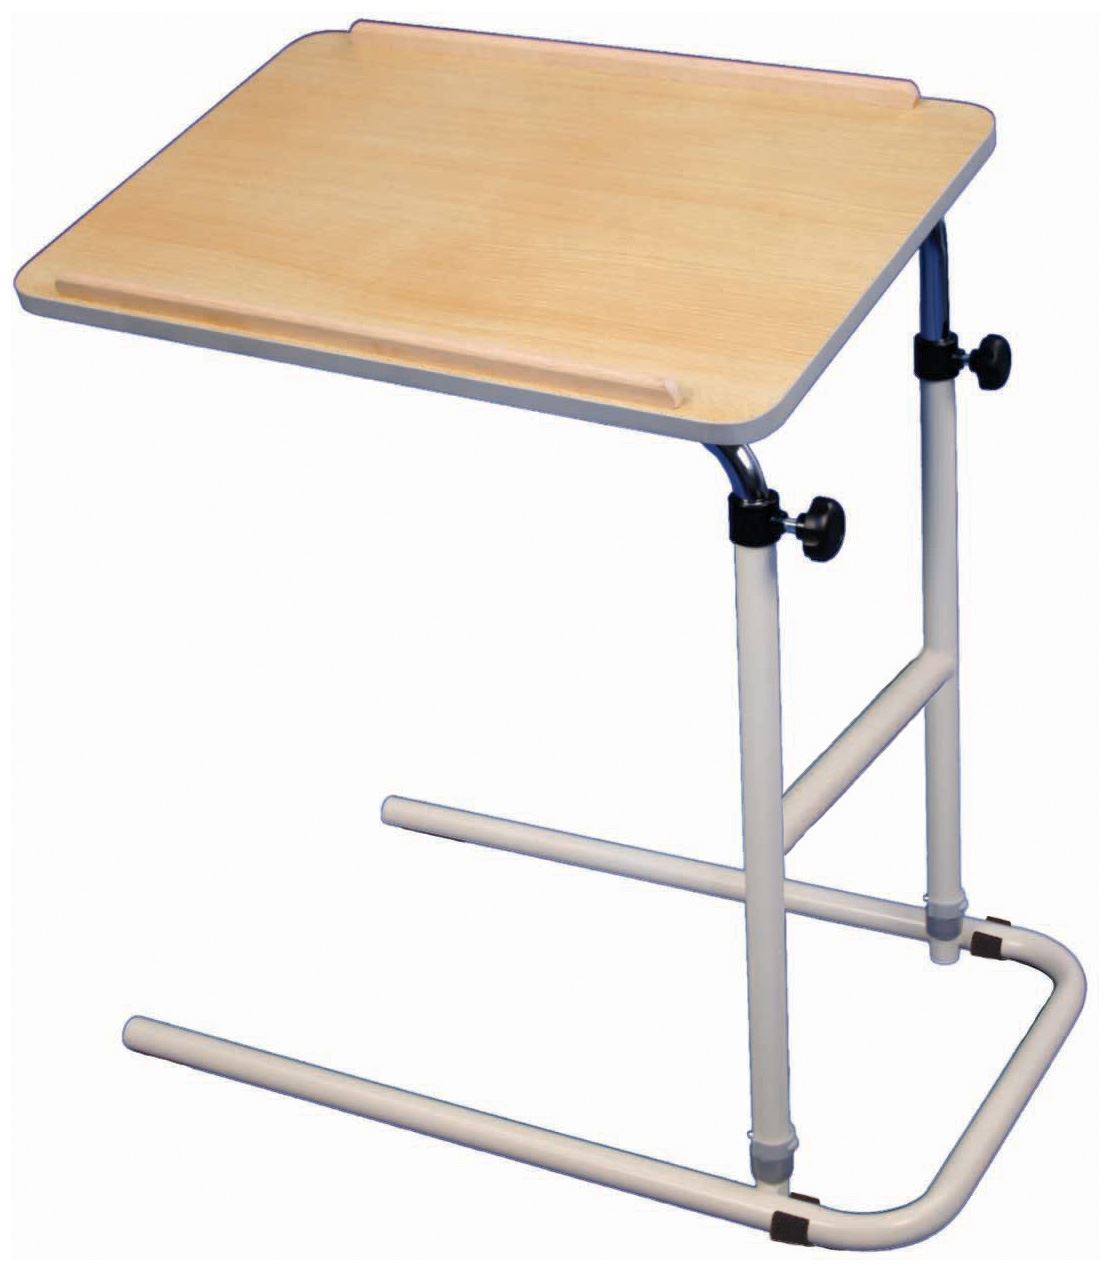 over chair tables uk design lounge cantilever bed or table adjustable height tilt